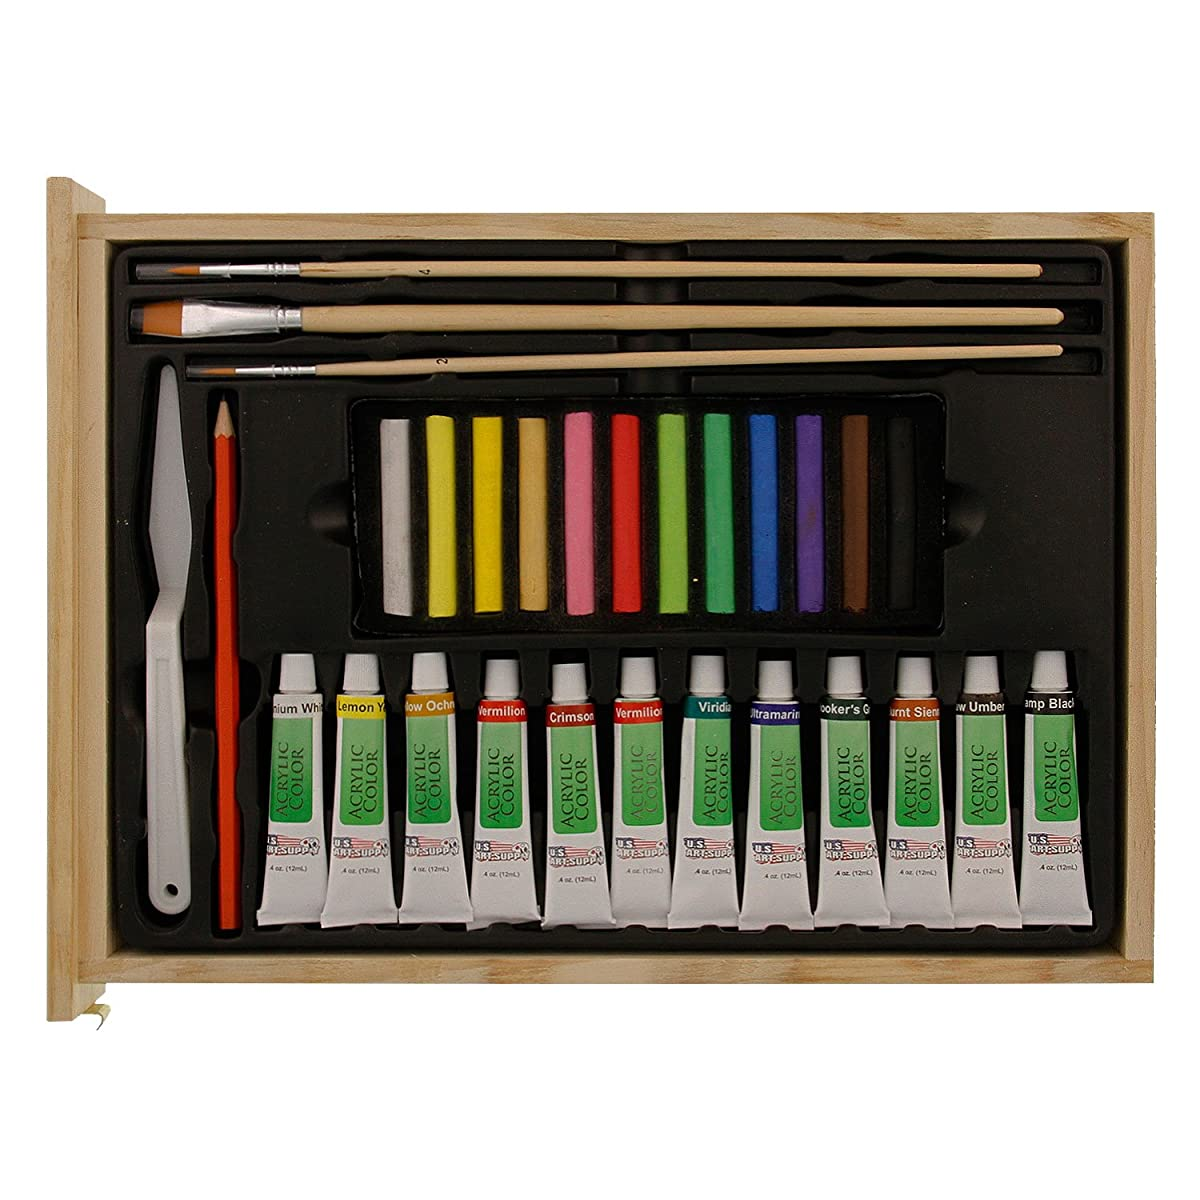 US Art Supply 62-Piece Wood Box Easel Painting Set- Including Box Easel, 12-tubes of Acrylic Paint Colors, 12-Artist Pastels, 3 Assorted Acrylic Painting Brushes